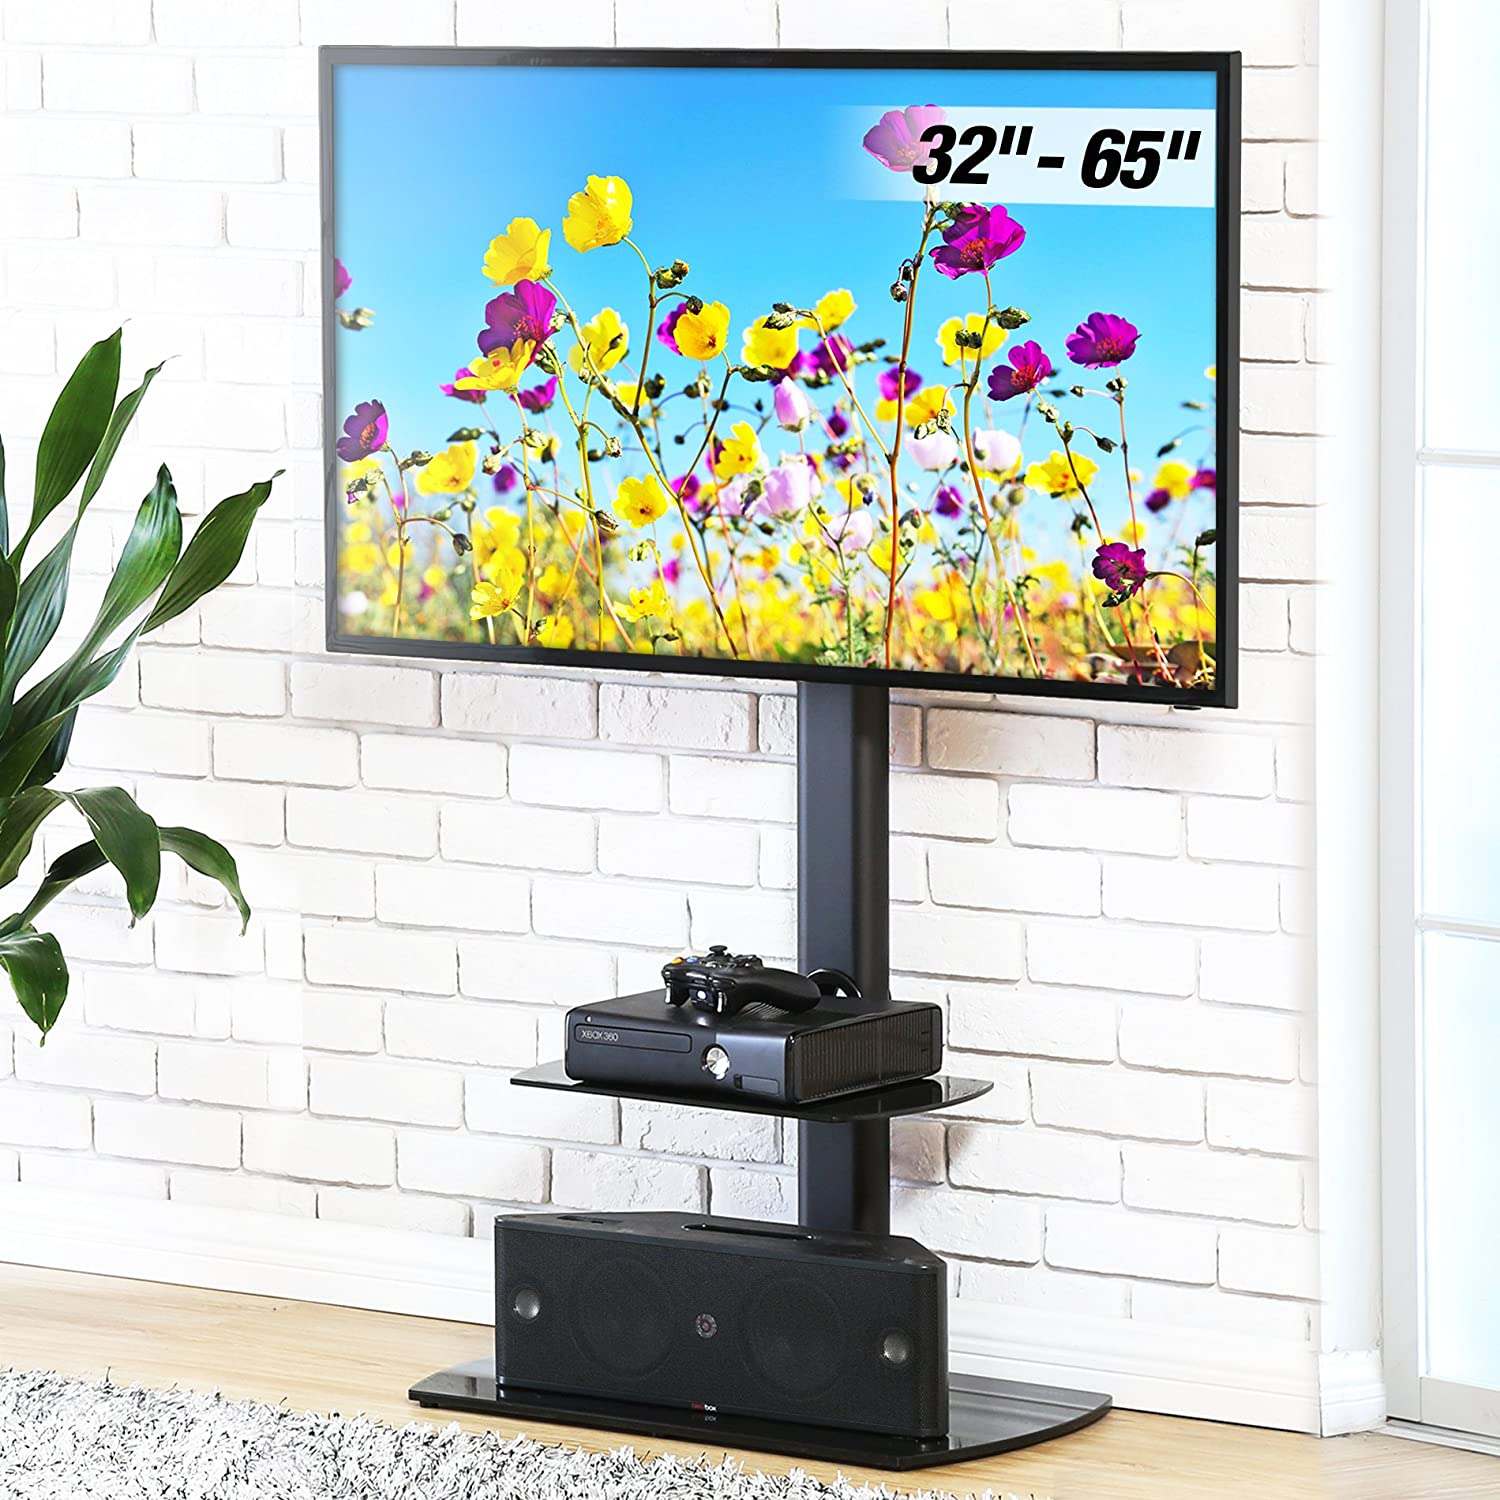 FITUEYES Cantilever TV Stand with Swivel Mount Glass Shelf for 32 to 65 inch LCD LED TV TT206502GB